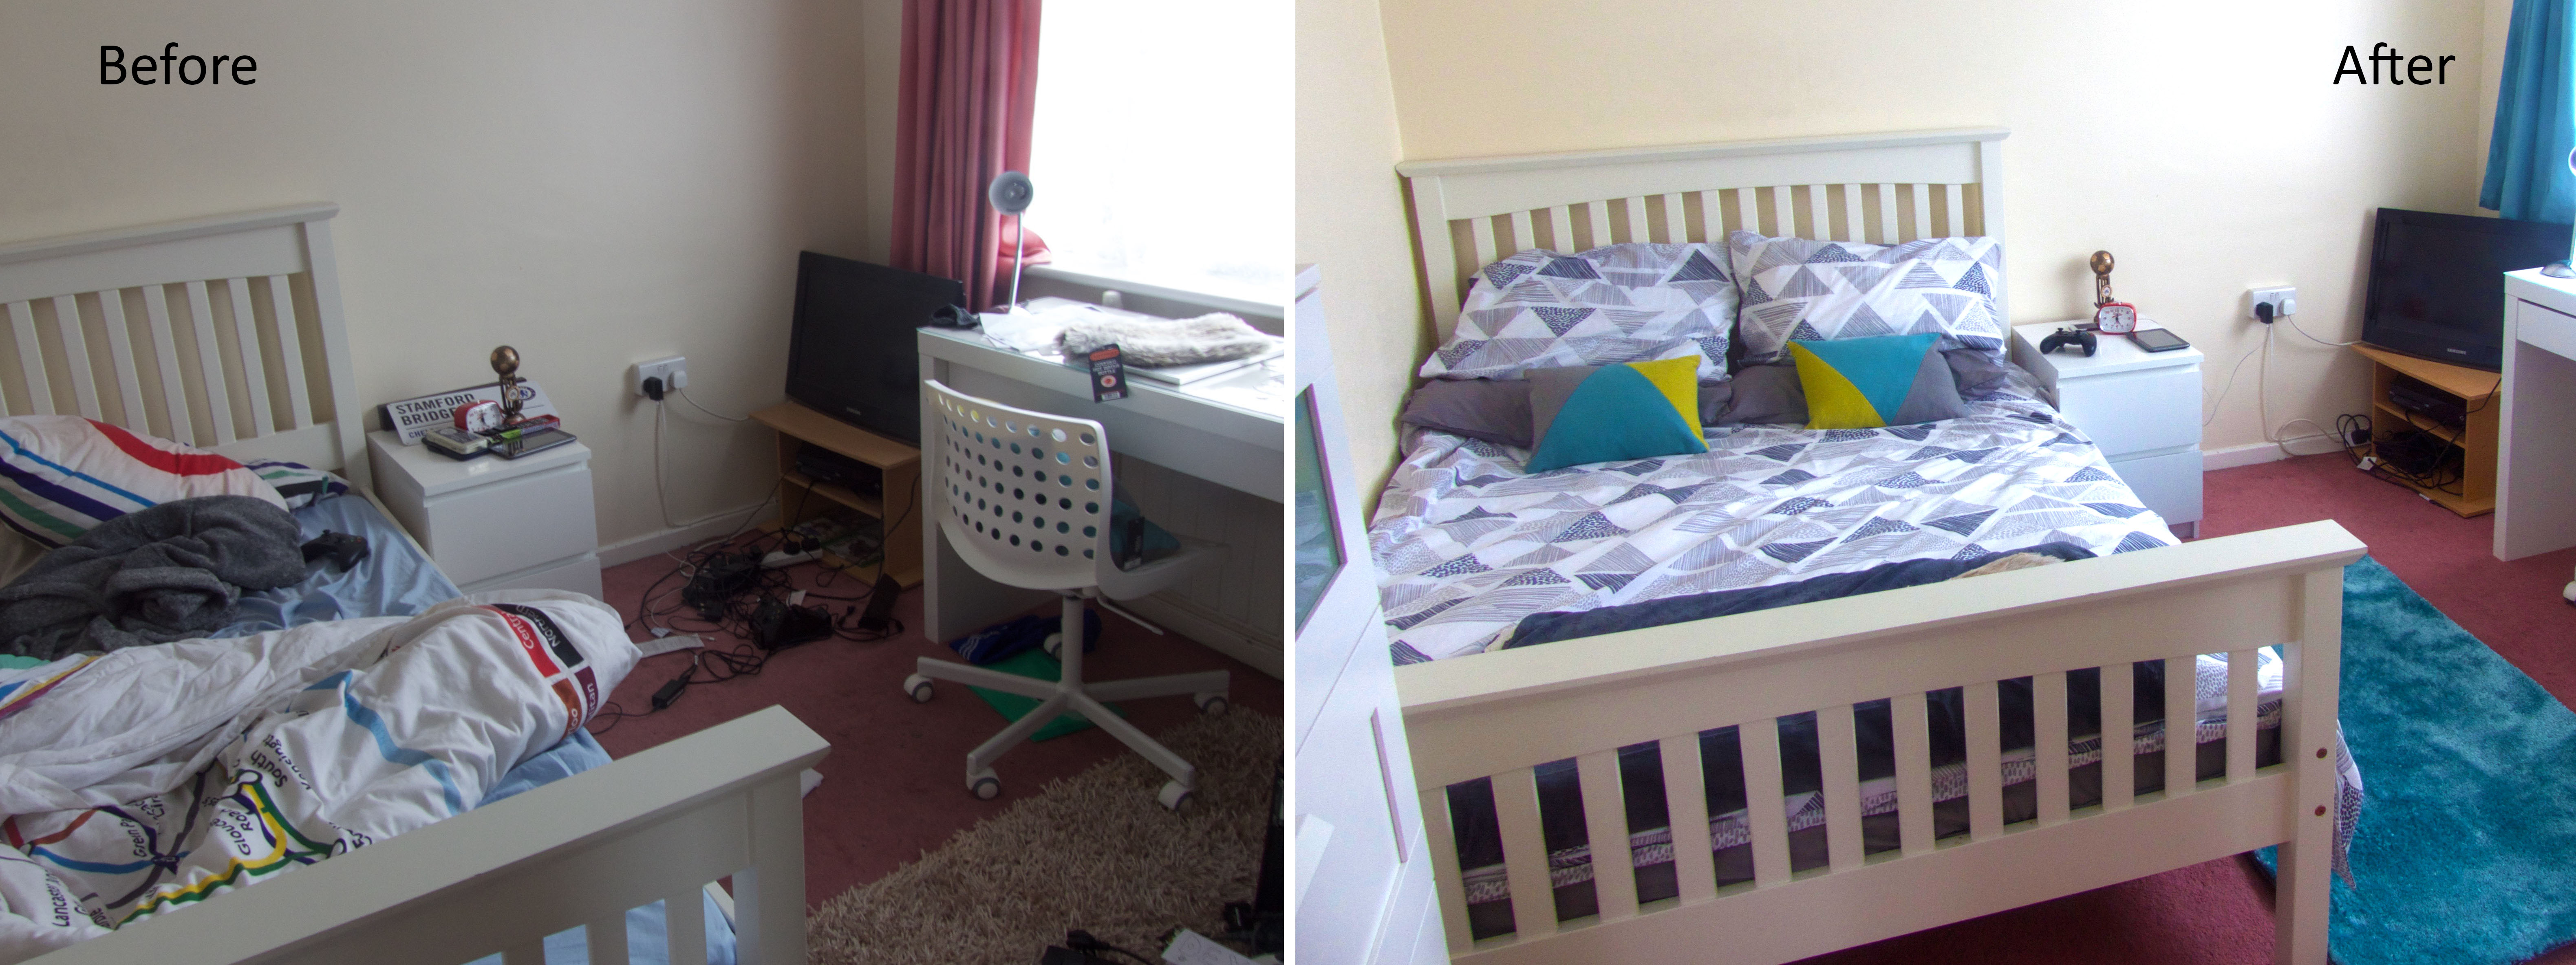 overall before and after bedroom